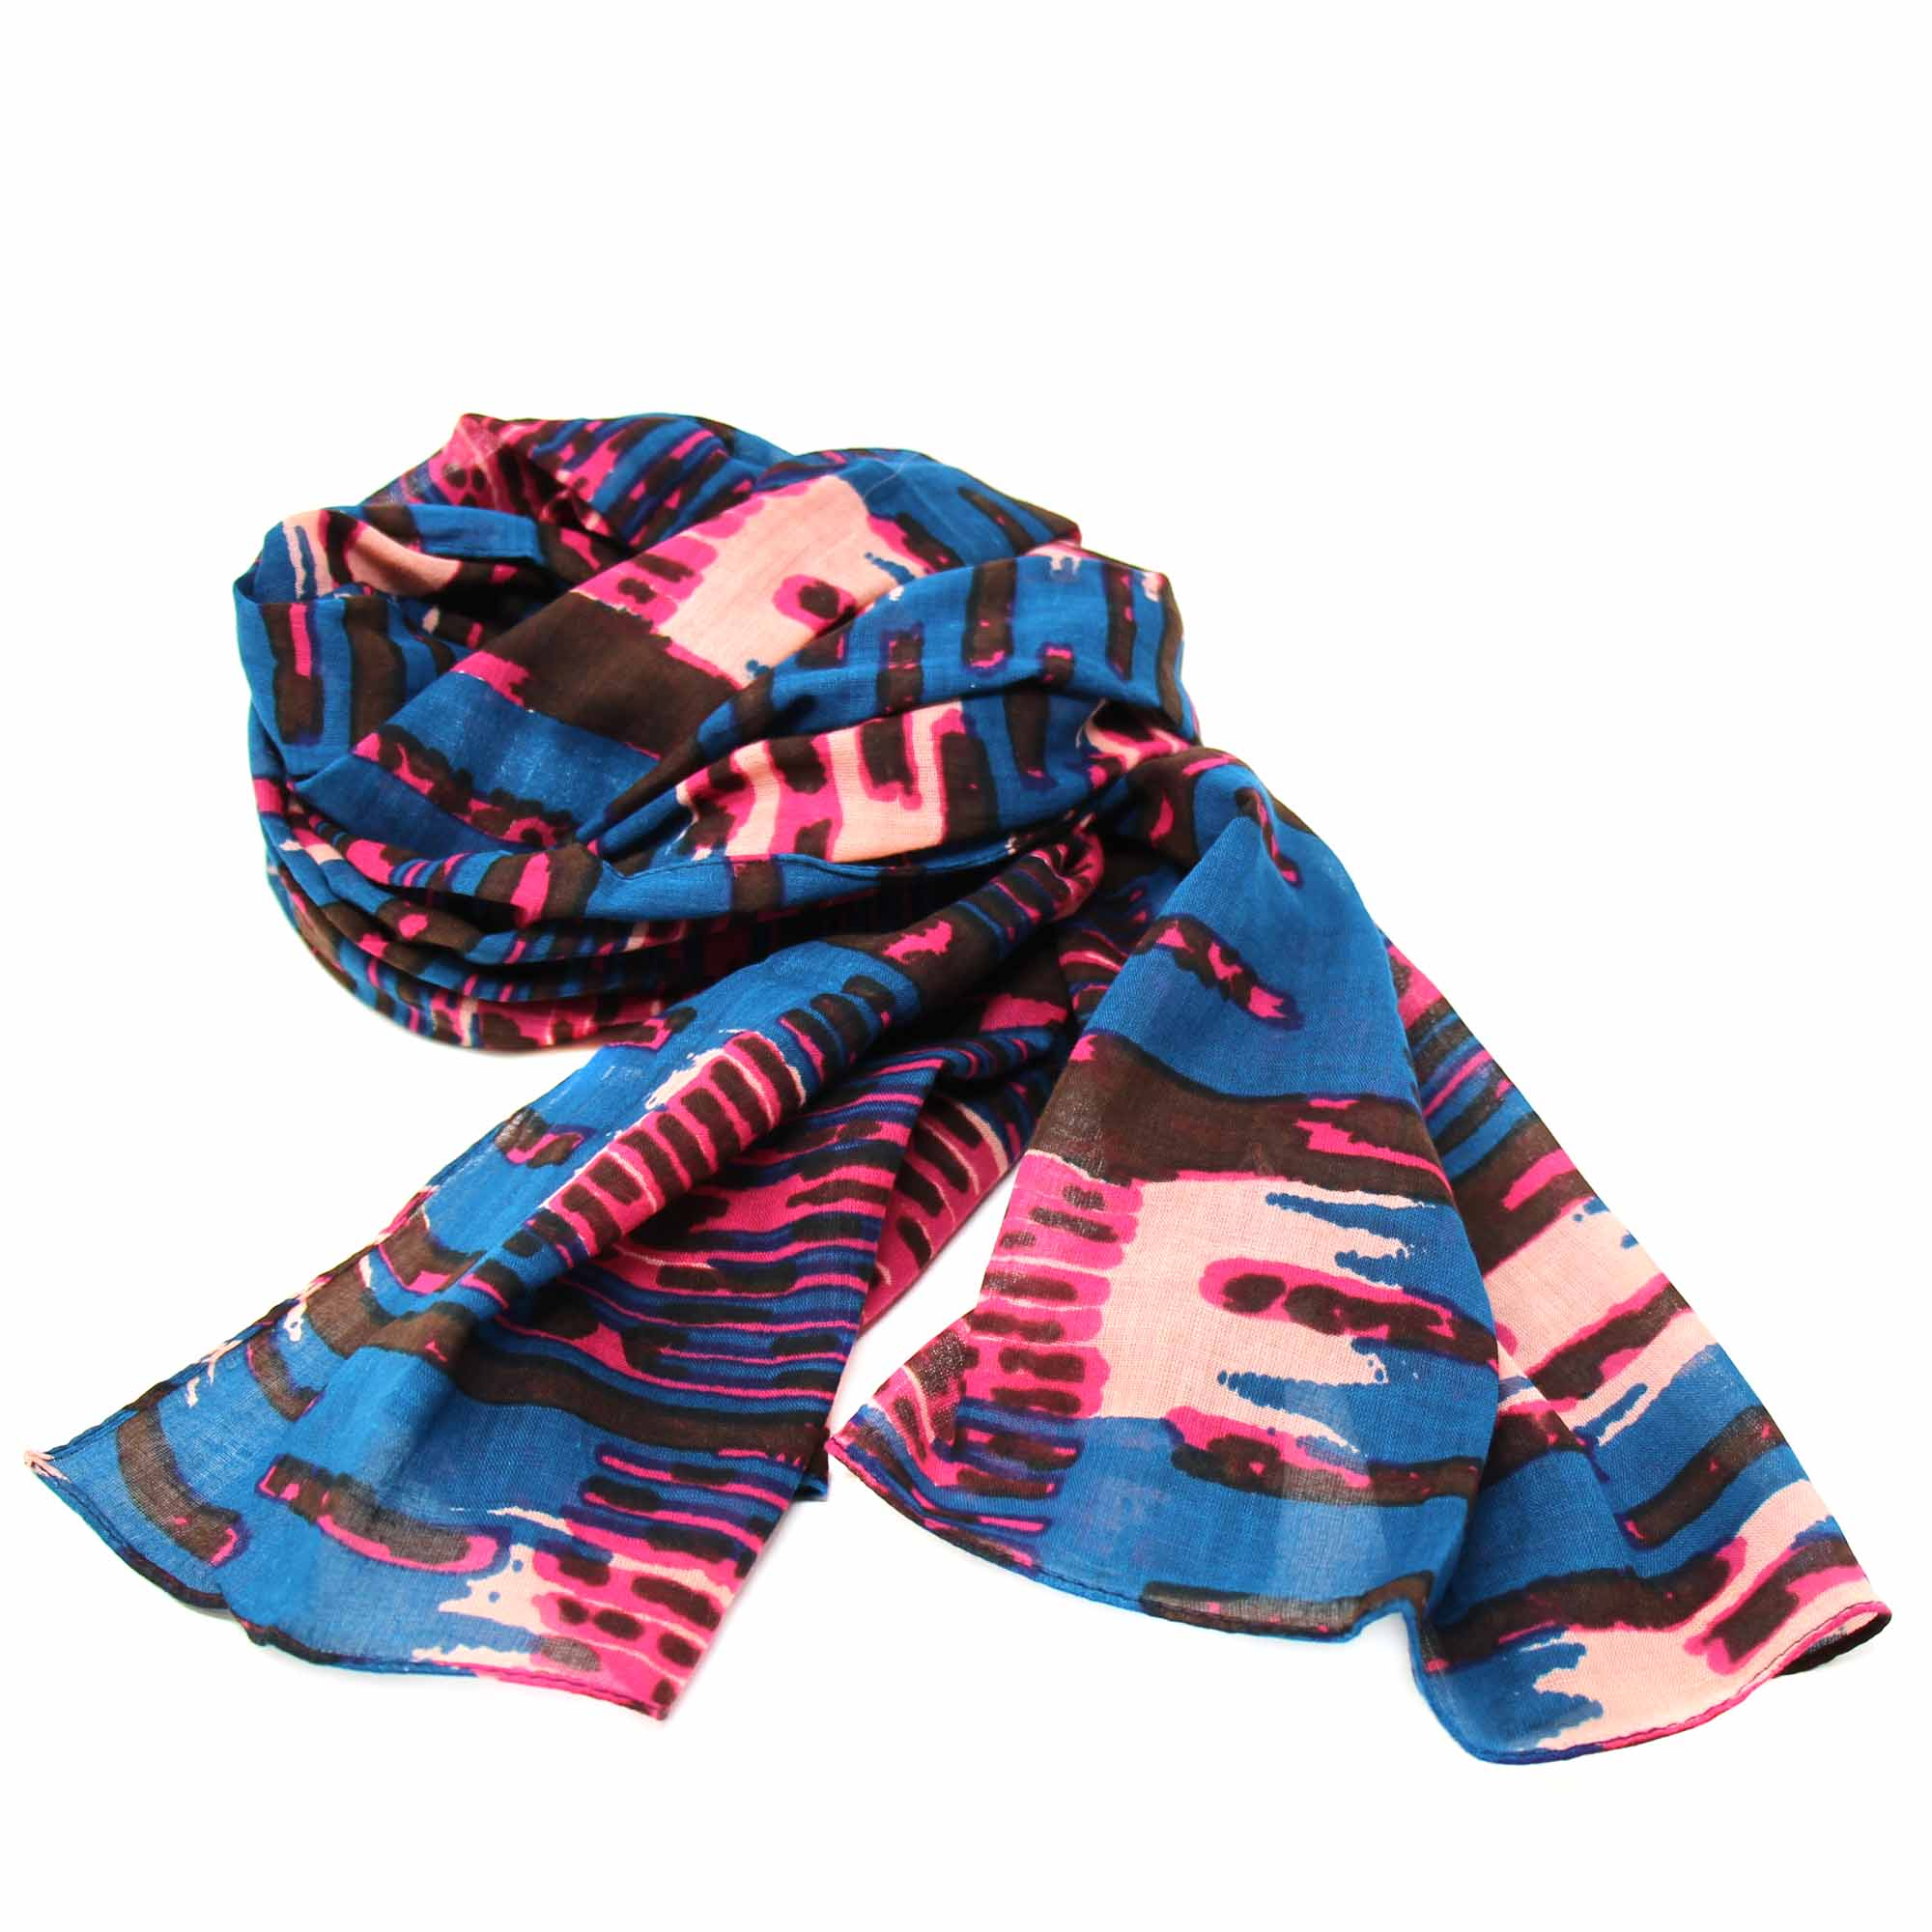 Printed Dark Abstract Design Cotton Scarf